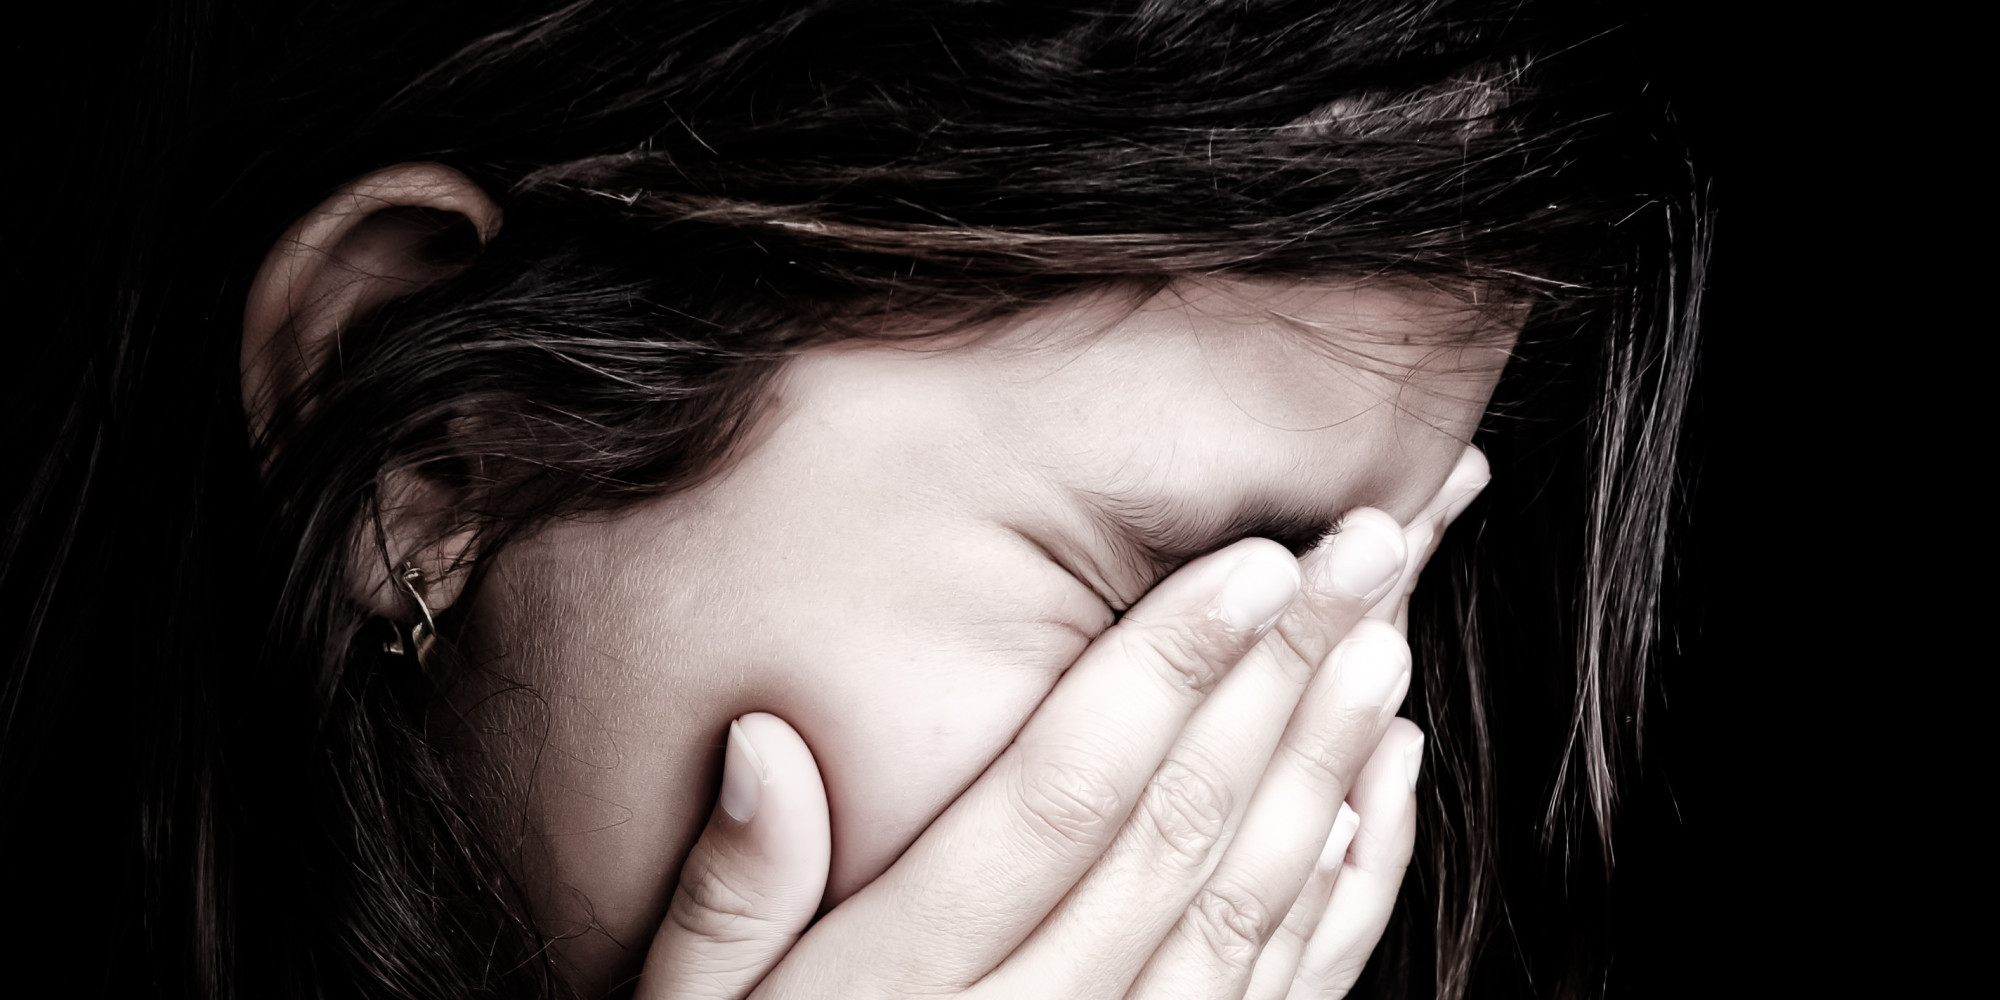 domestic abuse victims stay